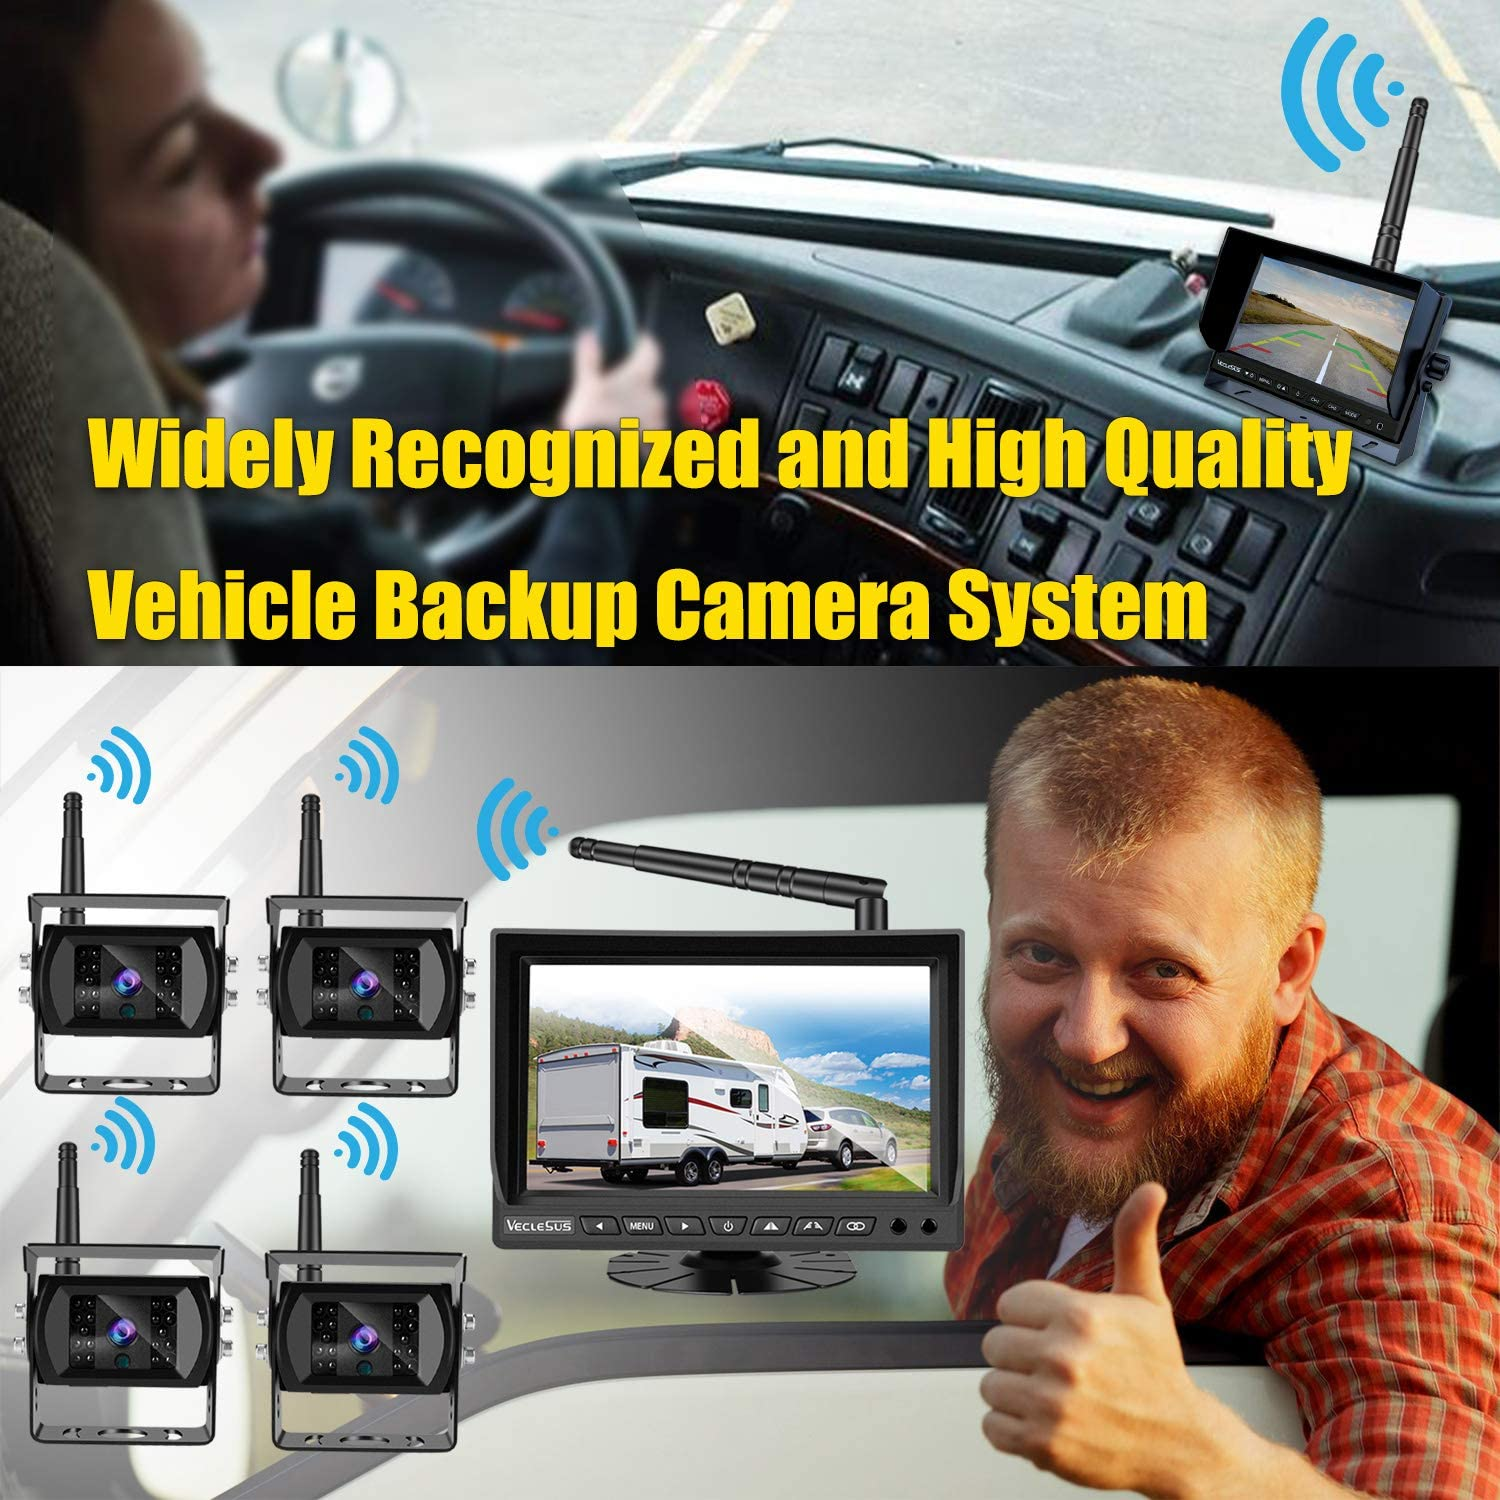 "VECLESUS VMW7-4C Wireless Backup Camera System with 4 Wireless Backup Cameras IP69k Waterproof IR Night Vision 1080P AHD Car Cameras and 7/"" IPS LCD Monitor for Car Parking//Continuous Observation"